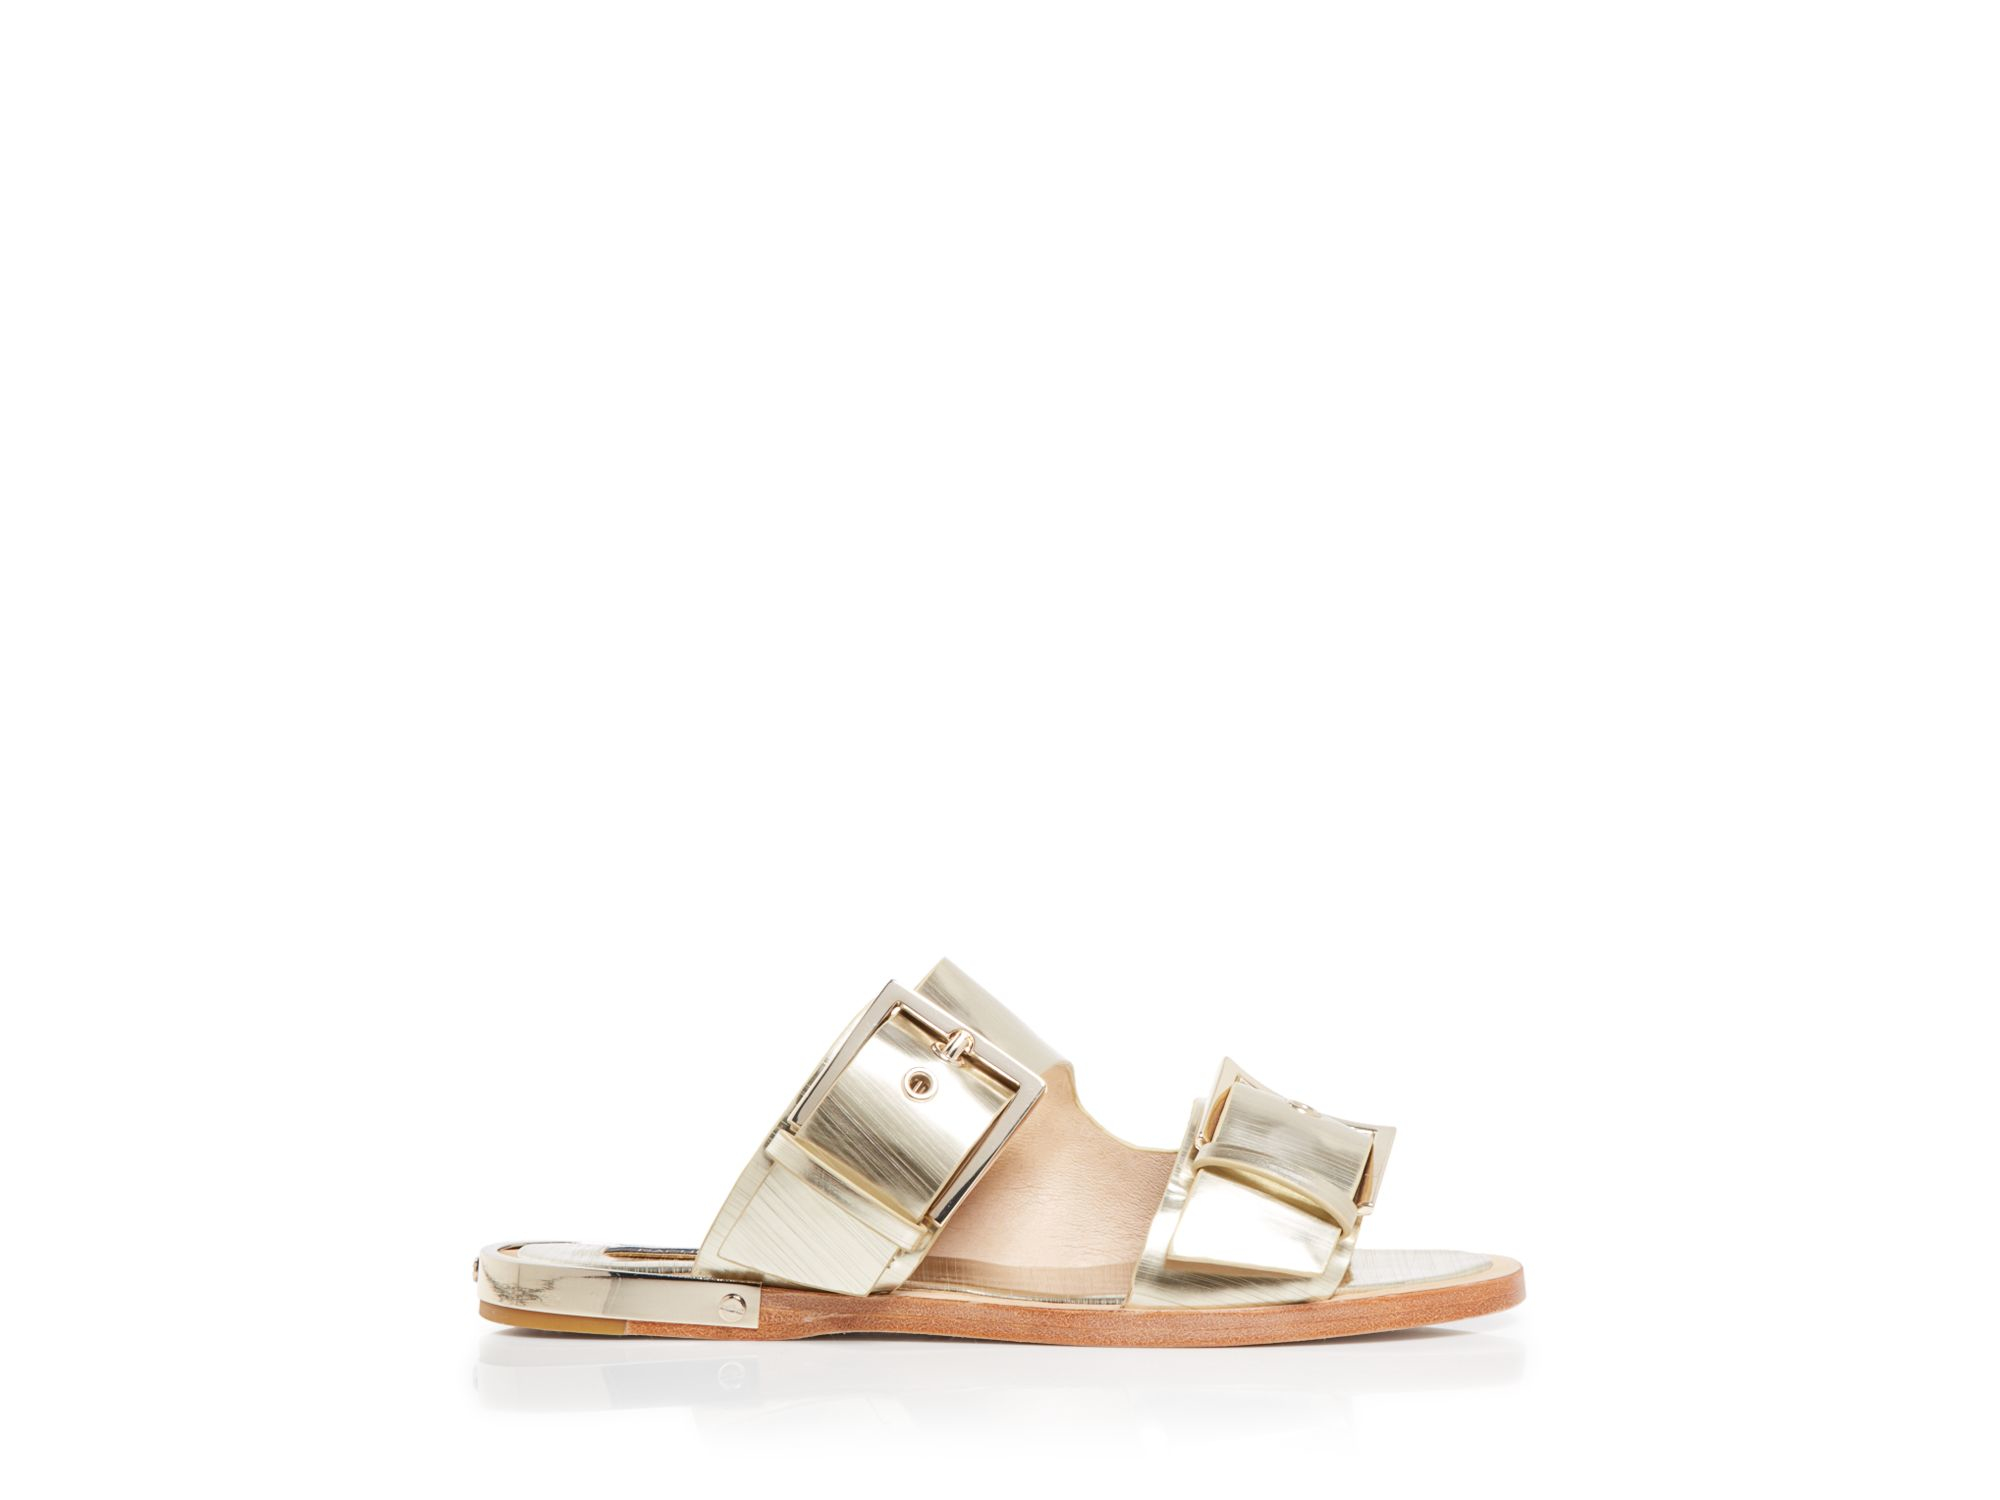 Rachel Zoe Metallic Slide Sandals real for sale 8mkxr9I